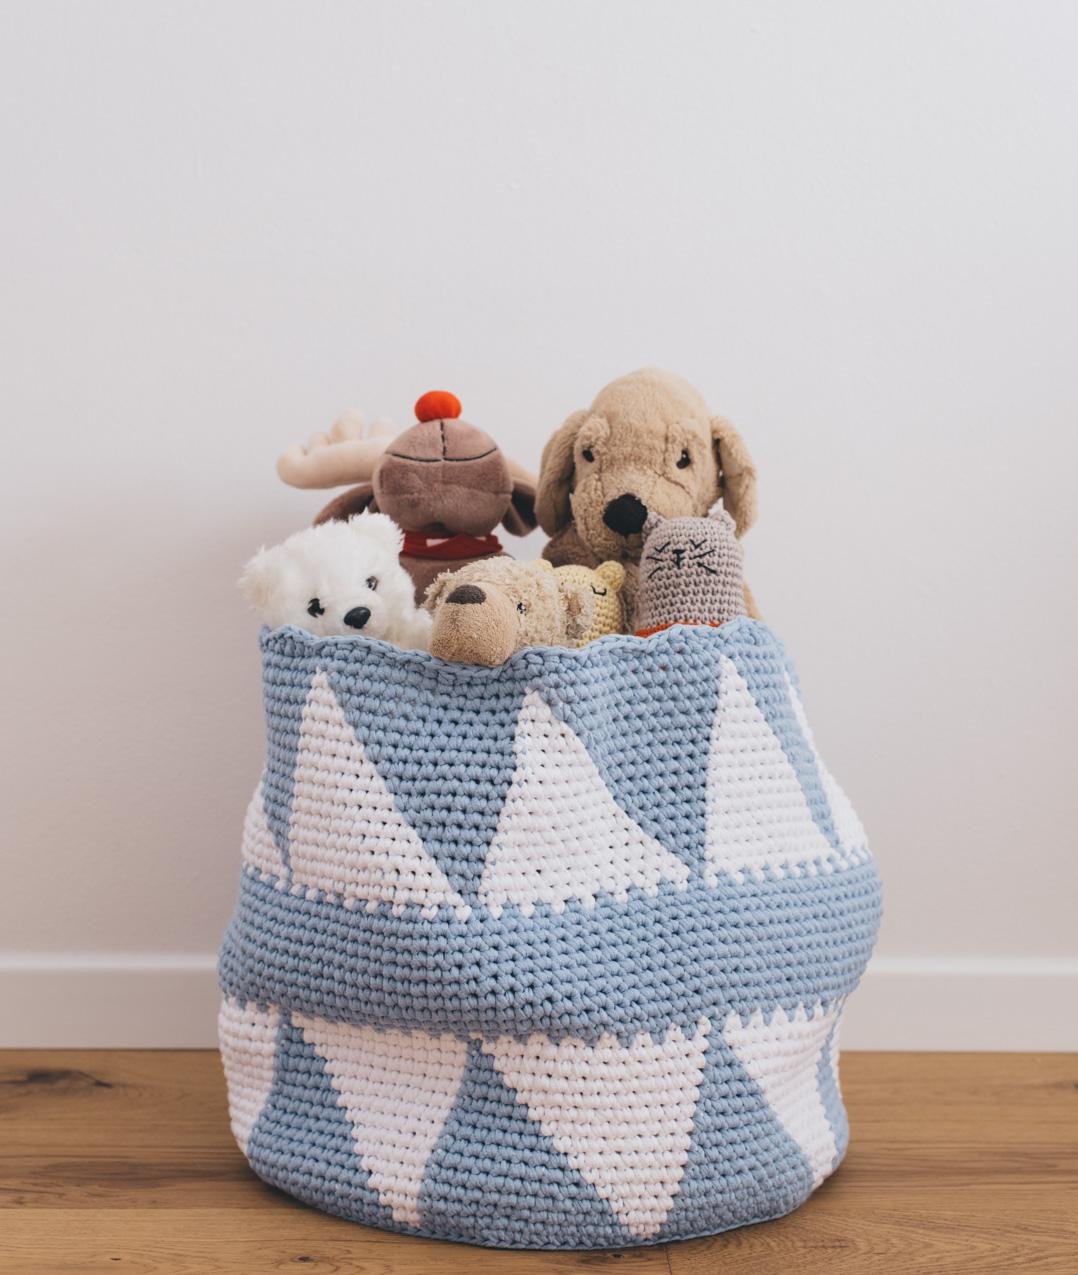 Kids Home Decor Collection - HomewareKids Home Decor Collection - Homeware - HAPPY TOYS BASKET - 1